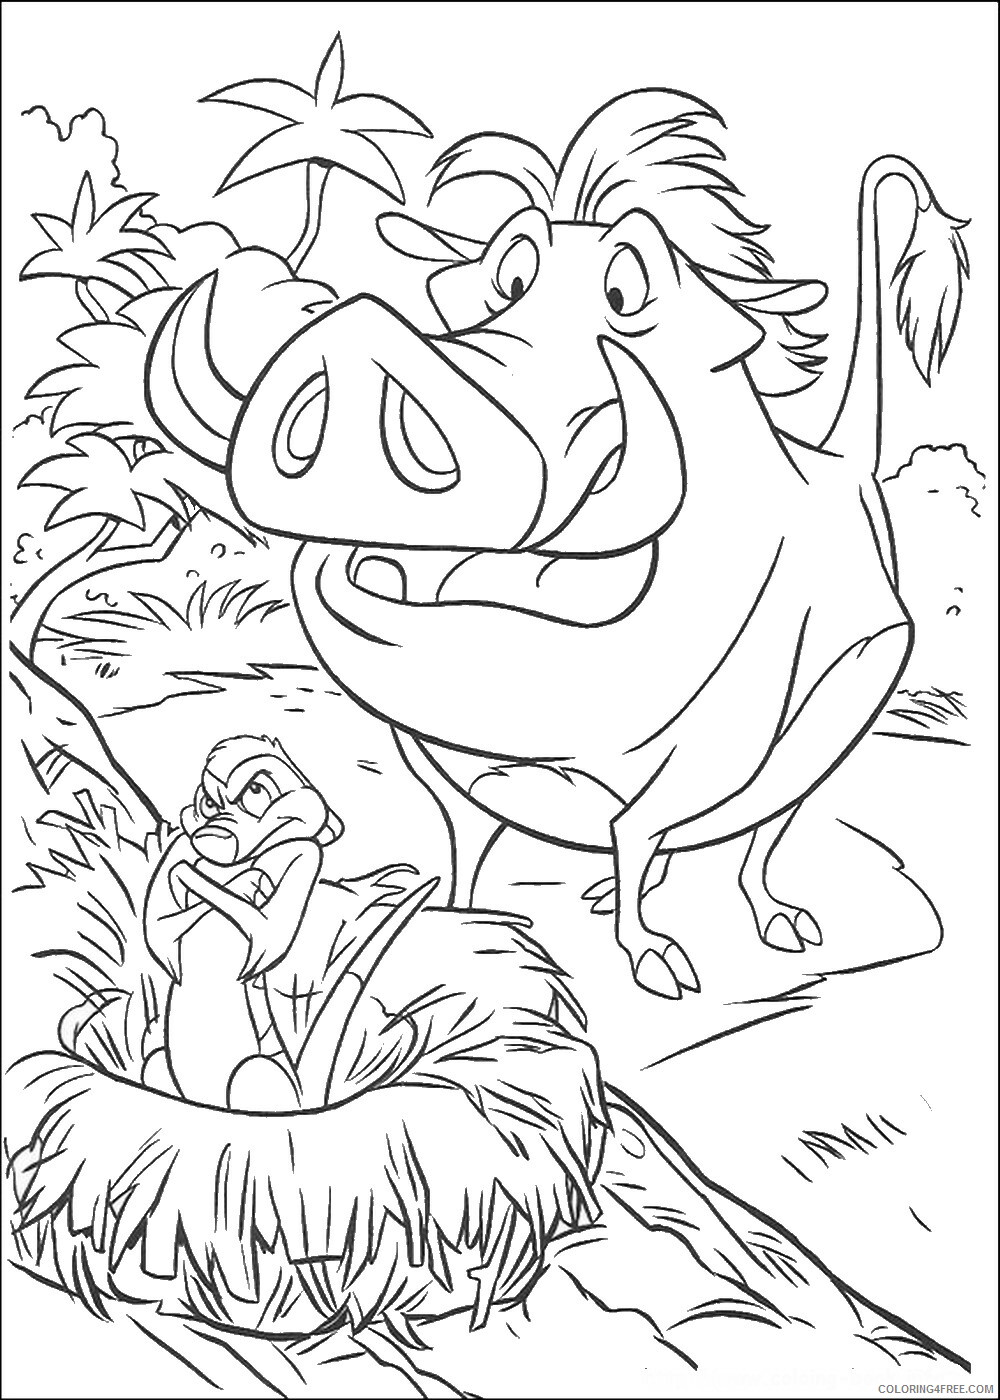 The Lion King Coloring Pages TV Film lionking_94 Printable 2020 09207 Coloring4free